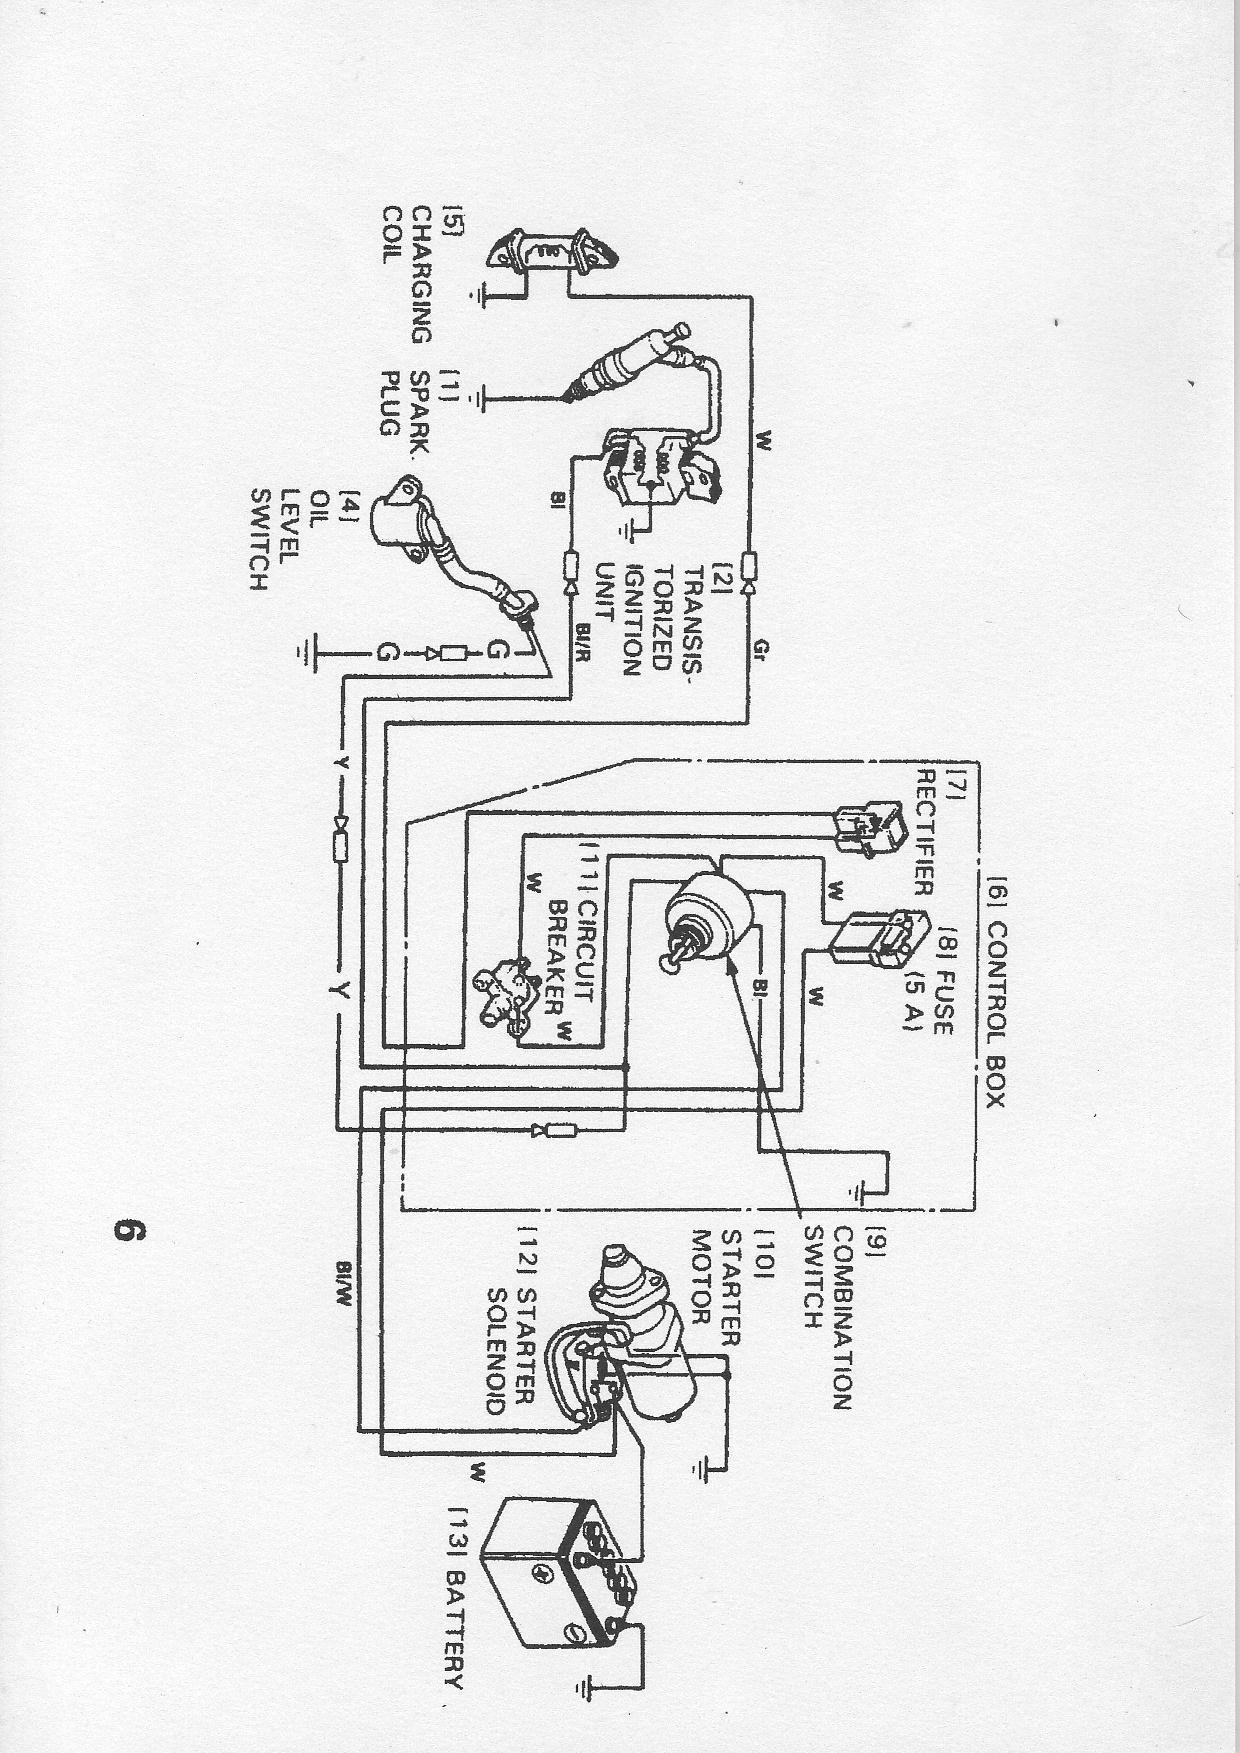 Honda Gx620 Ignition Wiring Diagram